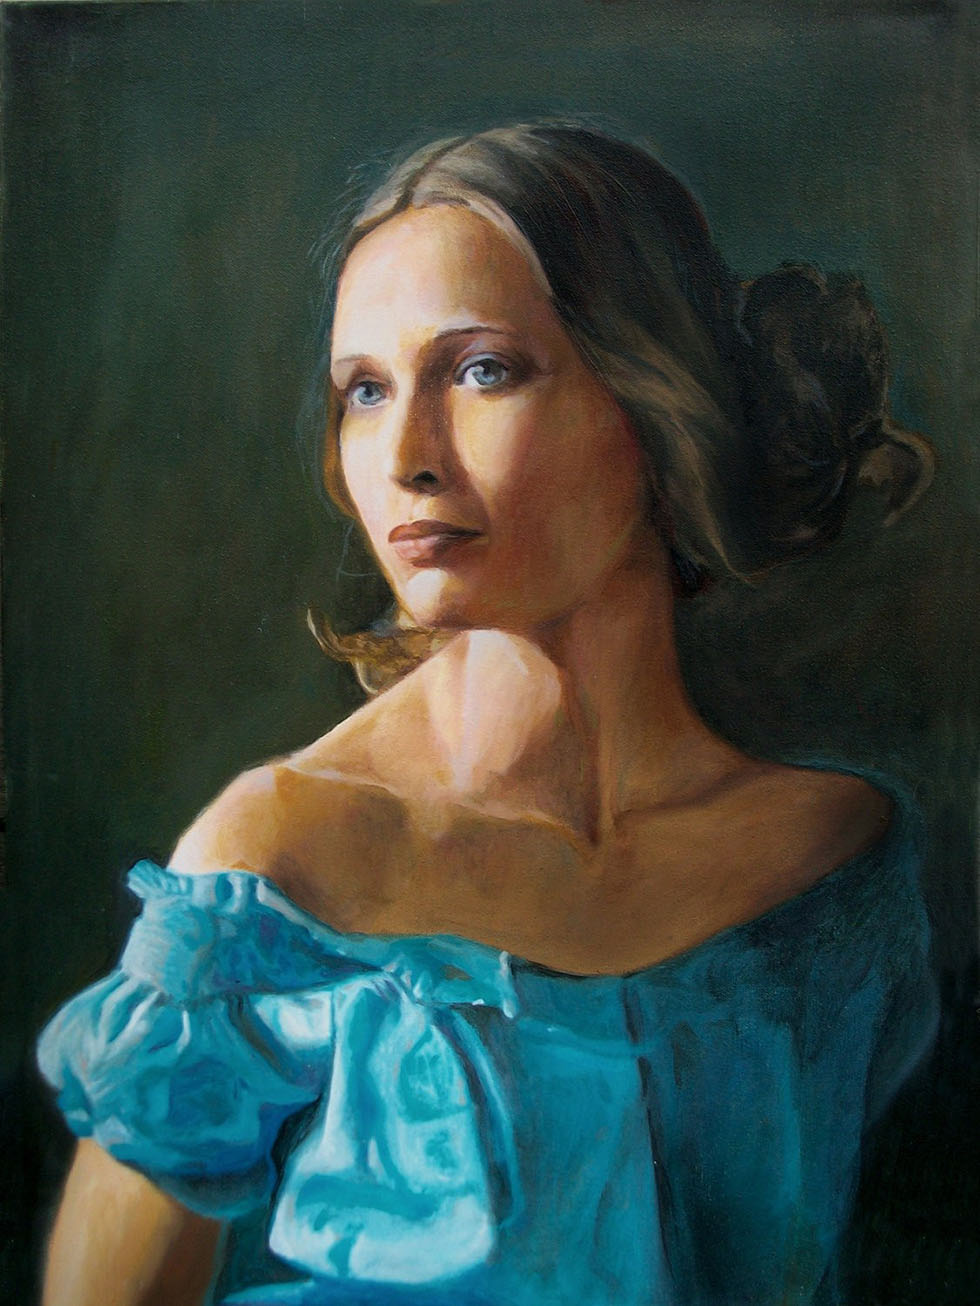 beautiful lady potrait paintings